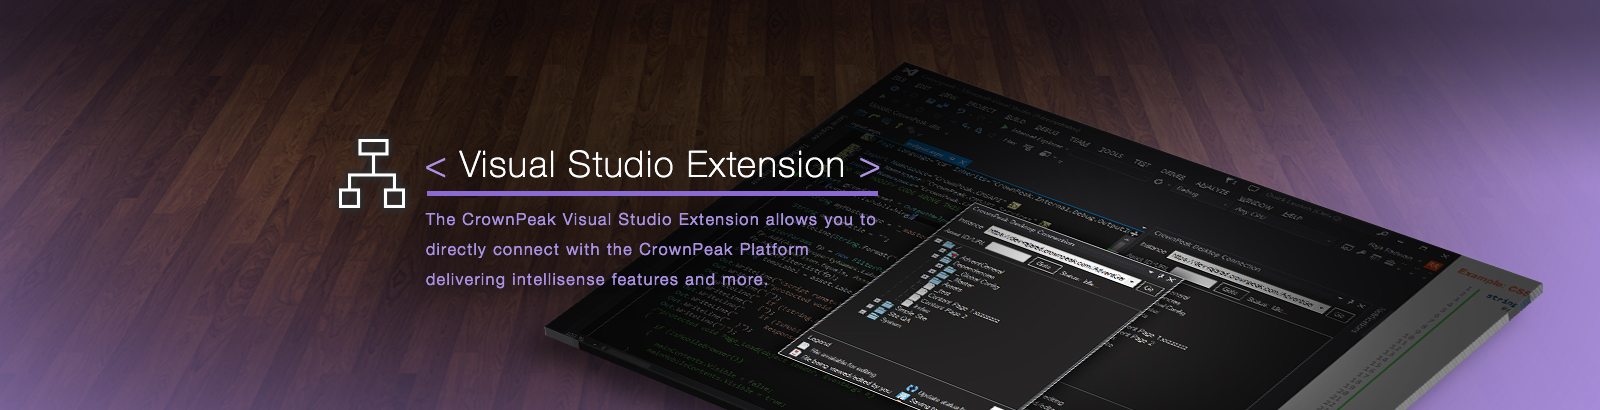 Visual Studio Extension